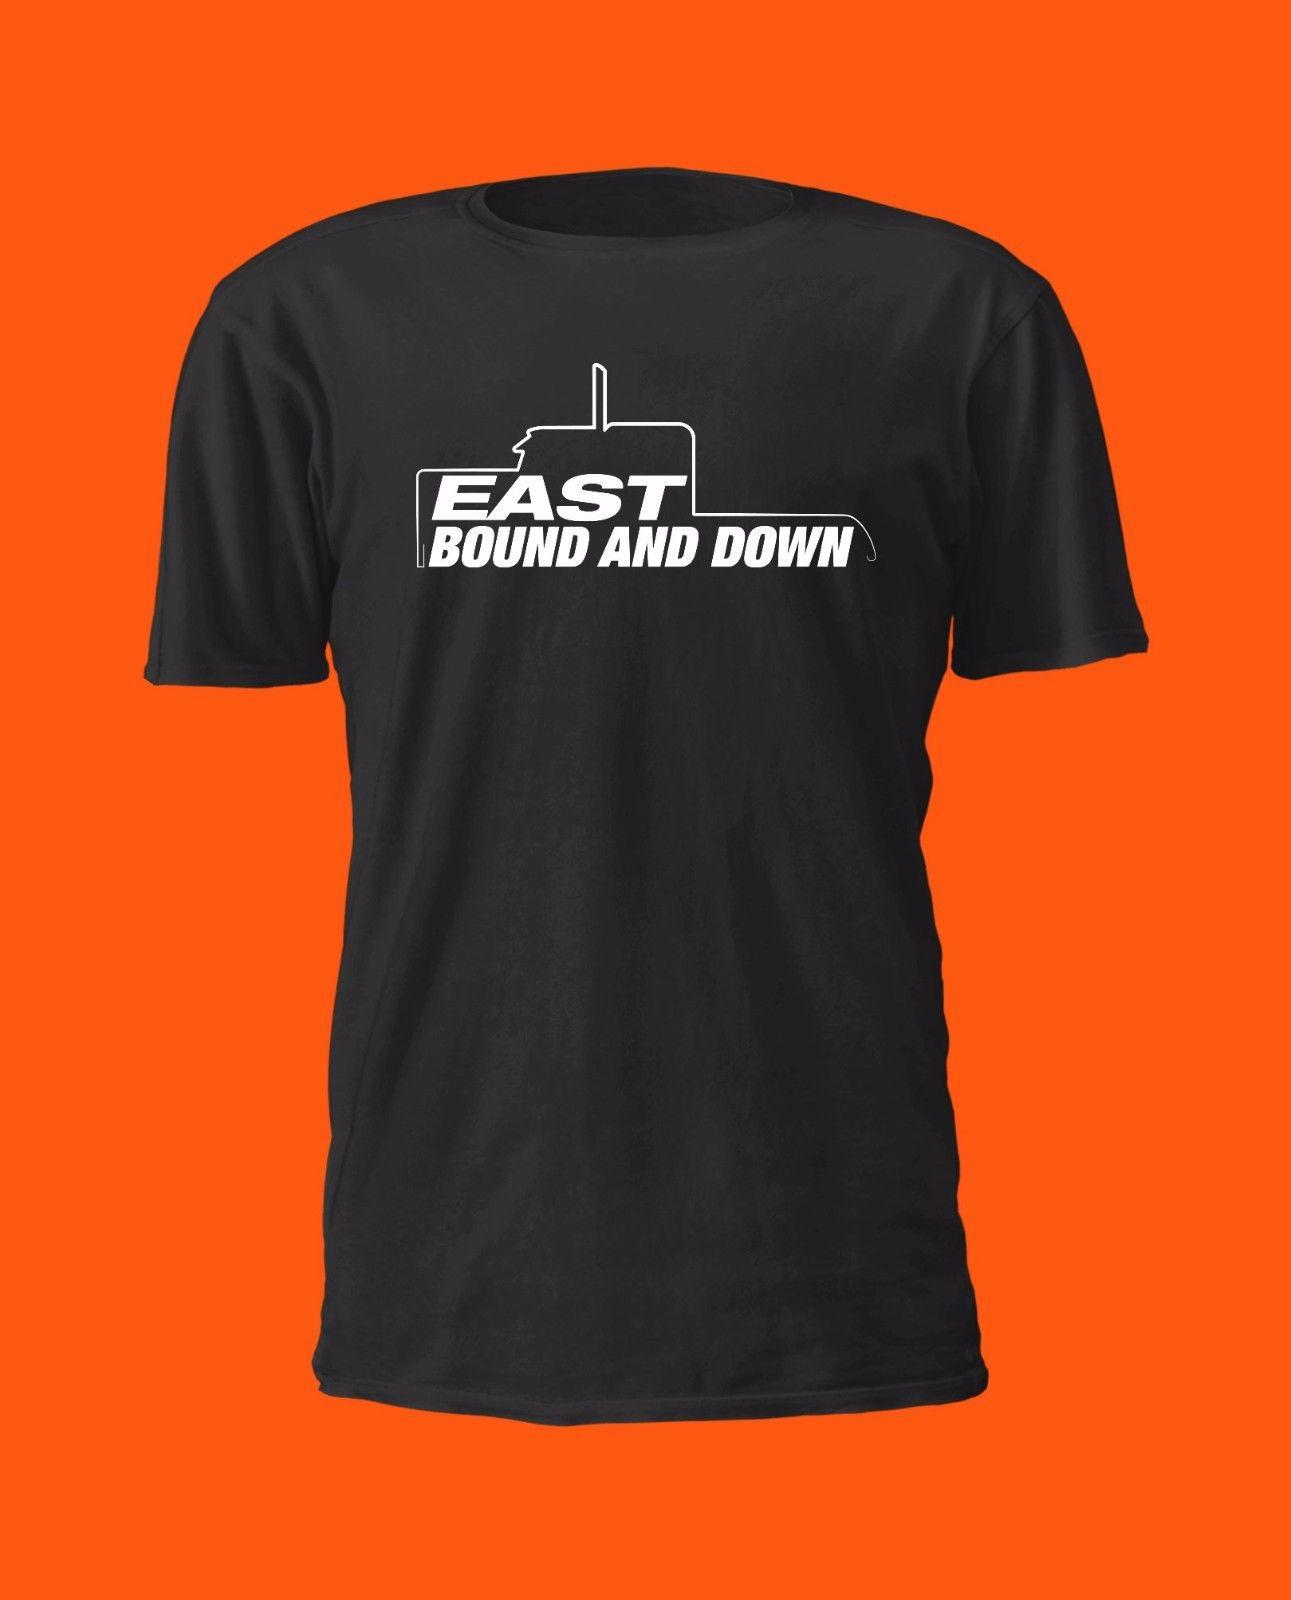 Semi Truck Silhouette East Bound and Down T Shirt - Trucking Peterbilt Mack  Funny free shipping Unisex Casual Tshirt top